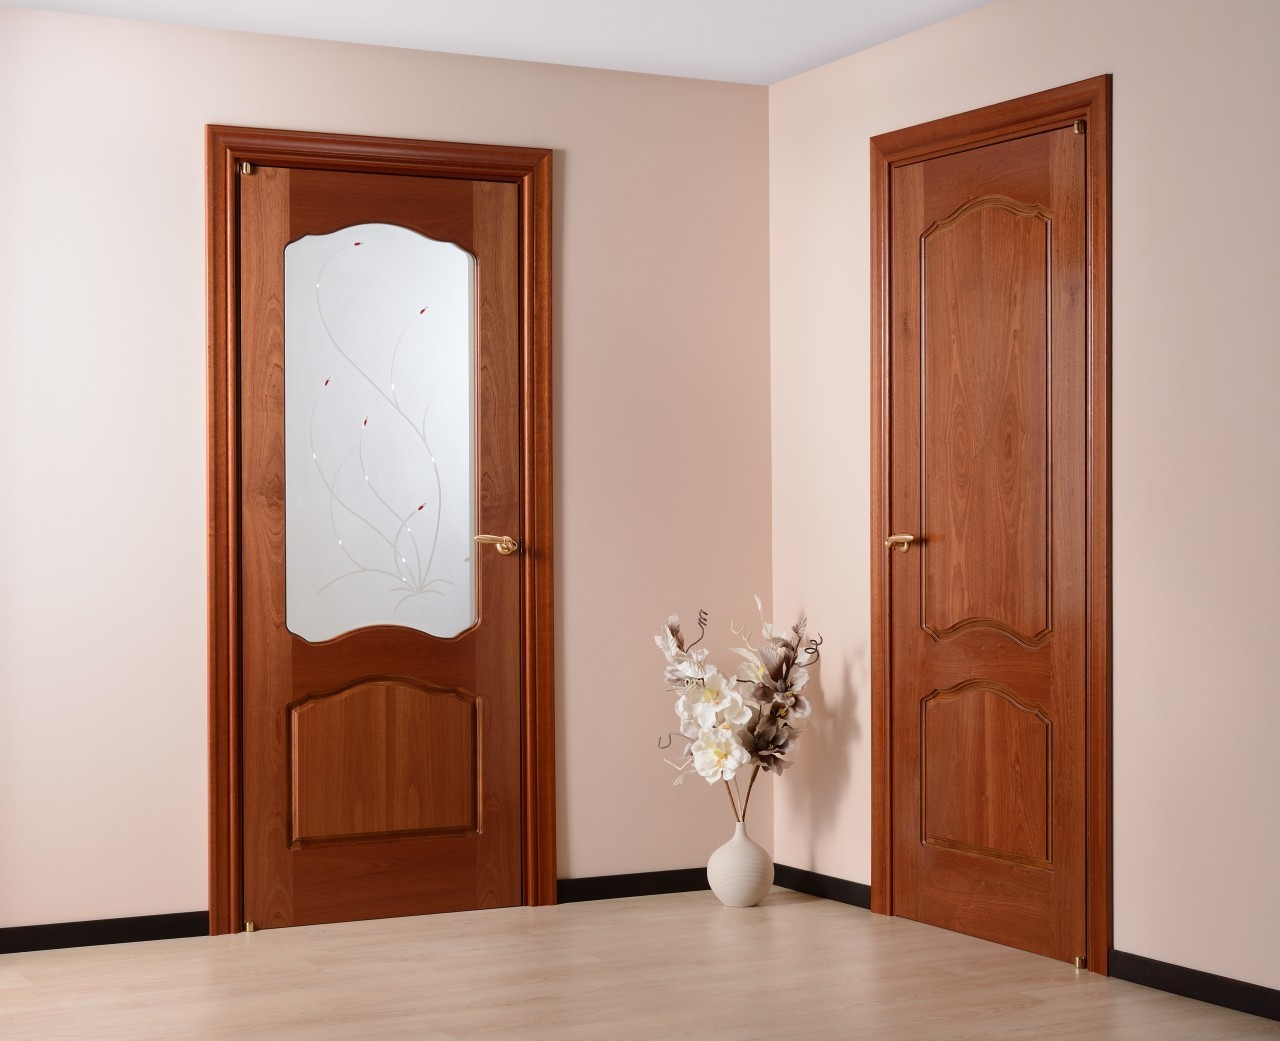 joinery doors furnitures carpentry wood carving no standart